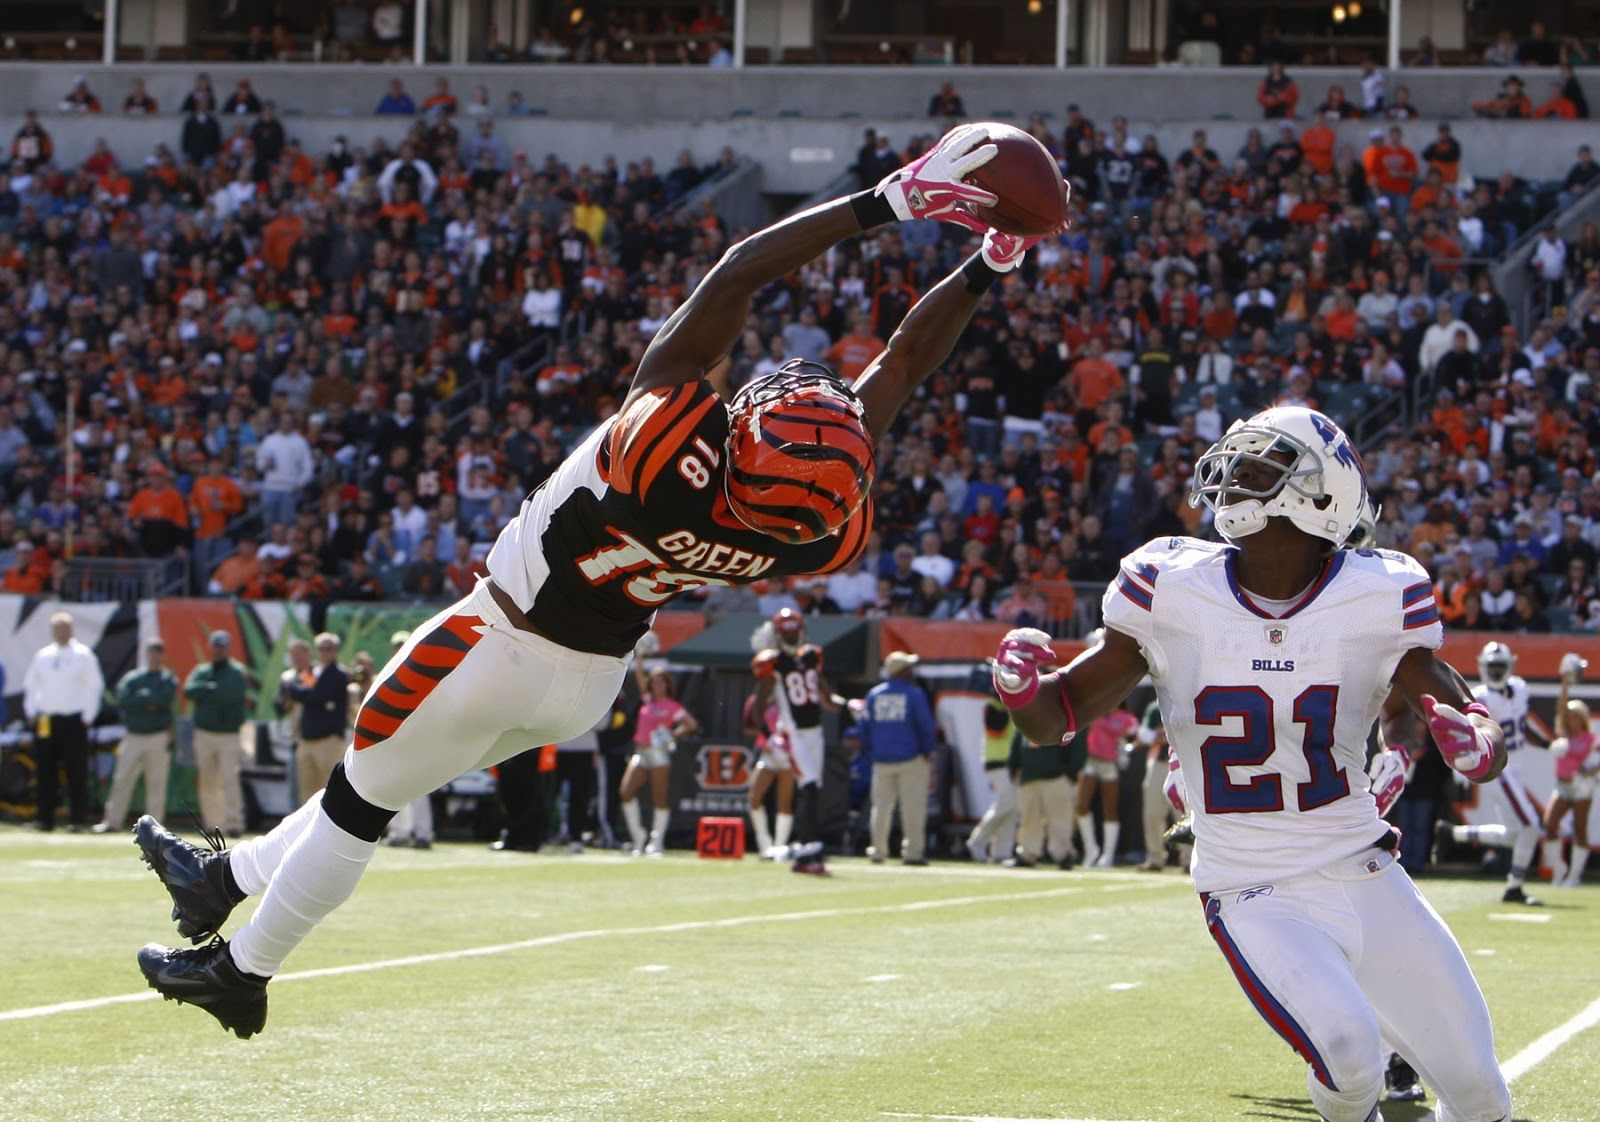 all in a day's work for A.J. Green Nfl betting, Sports